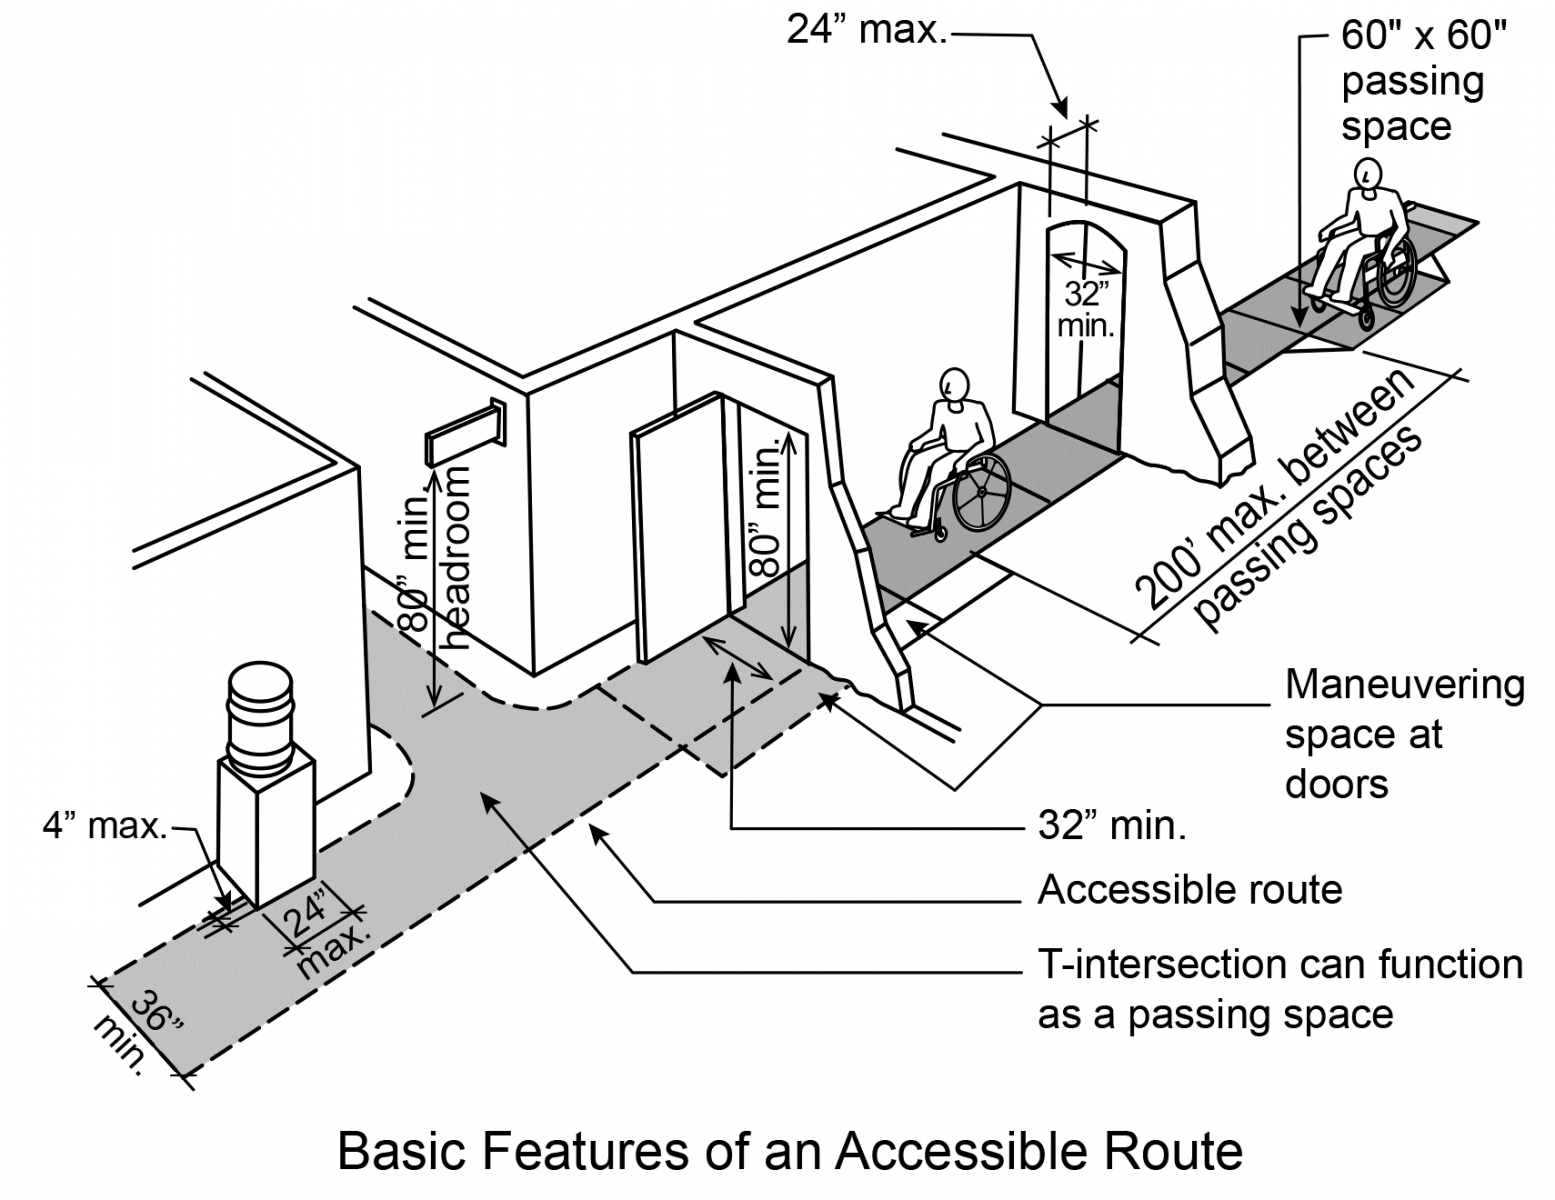 Figure 1: Accessible hallways and doorways inside a building are the minimum width (32 inches) and height (80 inches) for doorways; minimum passing space in a hallways (60 inches by 60 inches); and other dimensions for ensuring an accessible route.